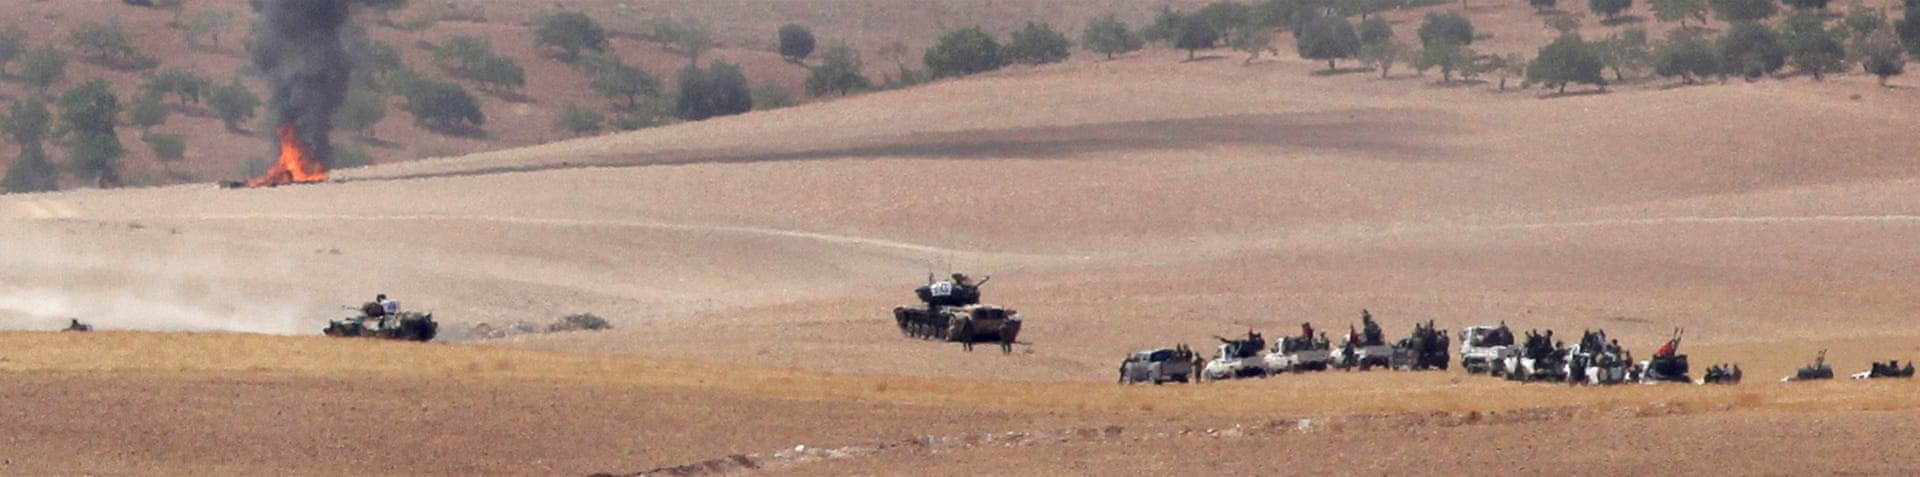 Jarablus, a strategic Syrian town on the border with Turkey, has been controlled by ISIL fighters for two years [EPA]